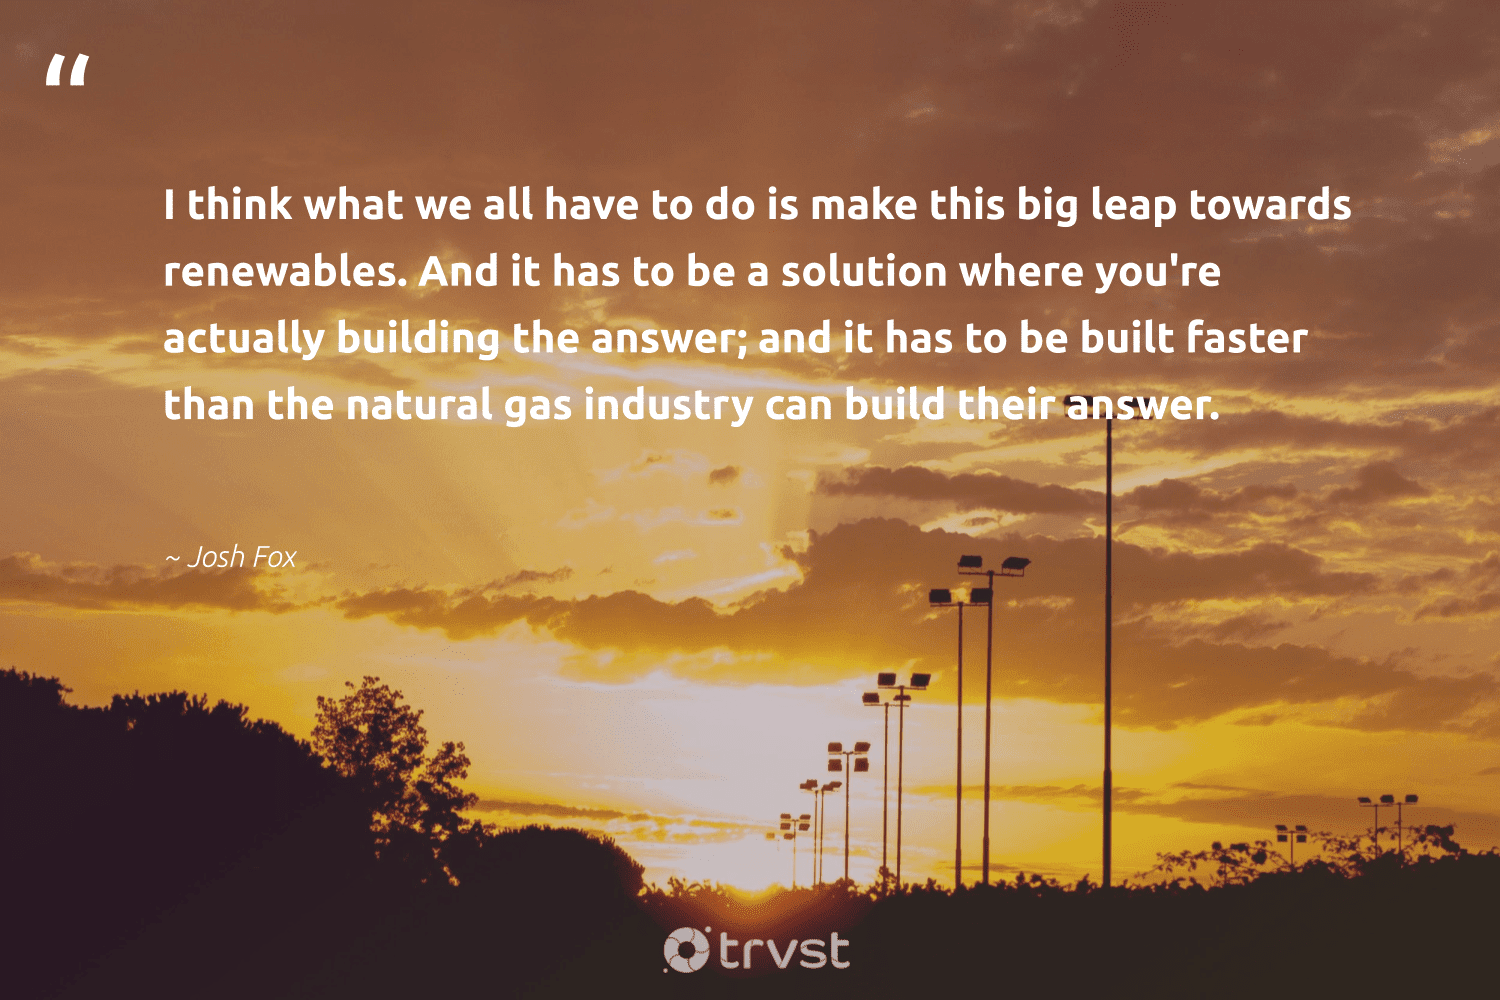 """""""I think what we all have to do is make this big leap towards renewables. And it has to be a solution where you're actually building the answer; and it has to be built faster than the natural gas industry can build their answer.""""  - Josh Fox #trvst #quotes #renewableenergy #renewables #gas #natural #100percentclean #sustainability #globalwarming #socialchange #switchfuelenergy #parisagreement"""